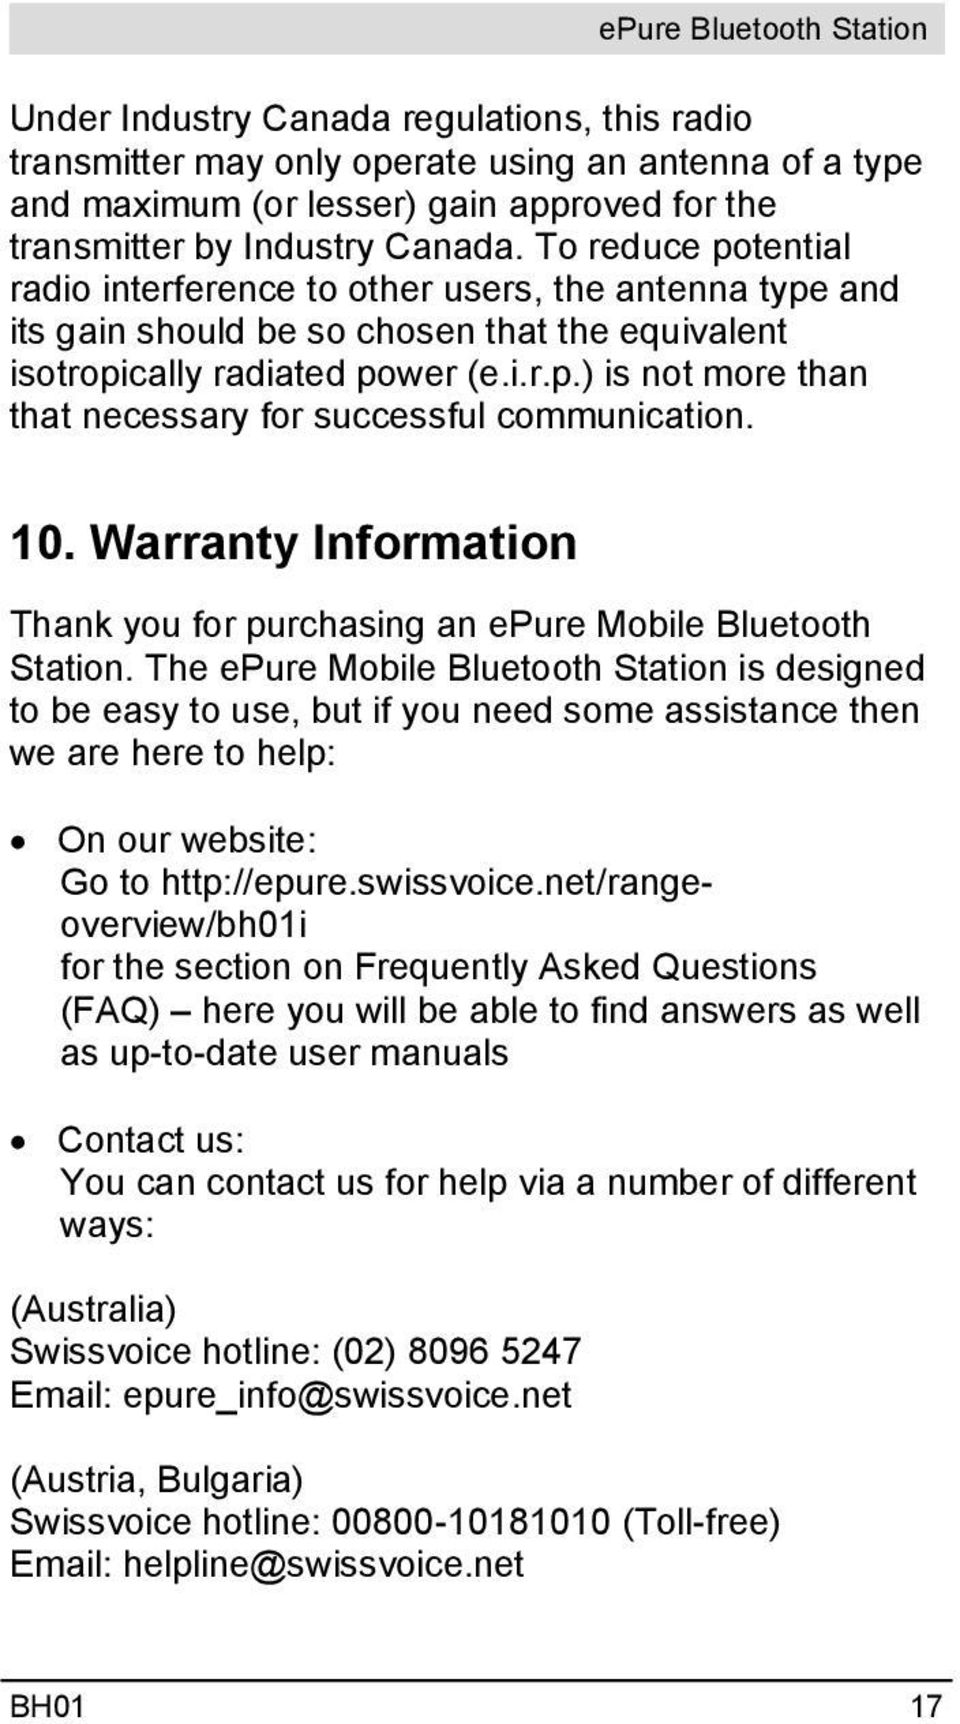 10. Warranty Information Thank you for purchasing an epure Mobile Bluetooth Station.